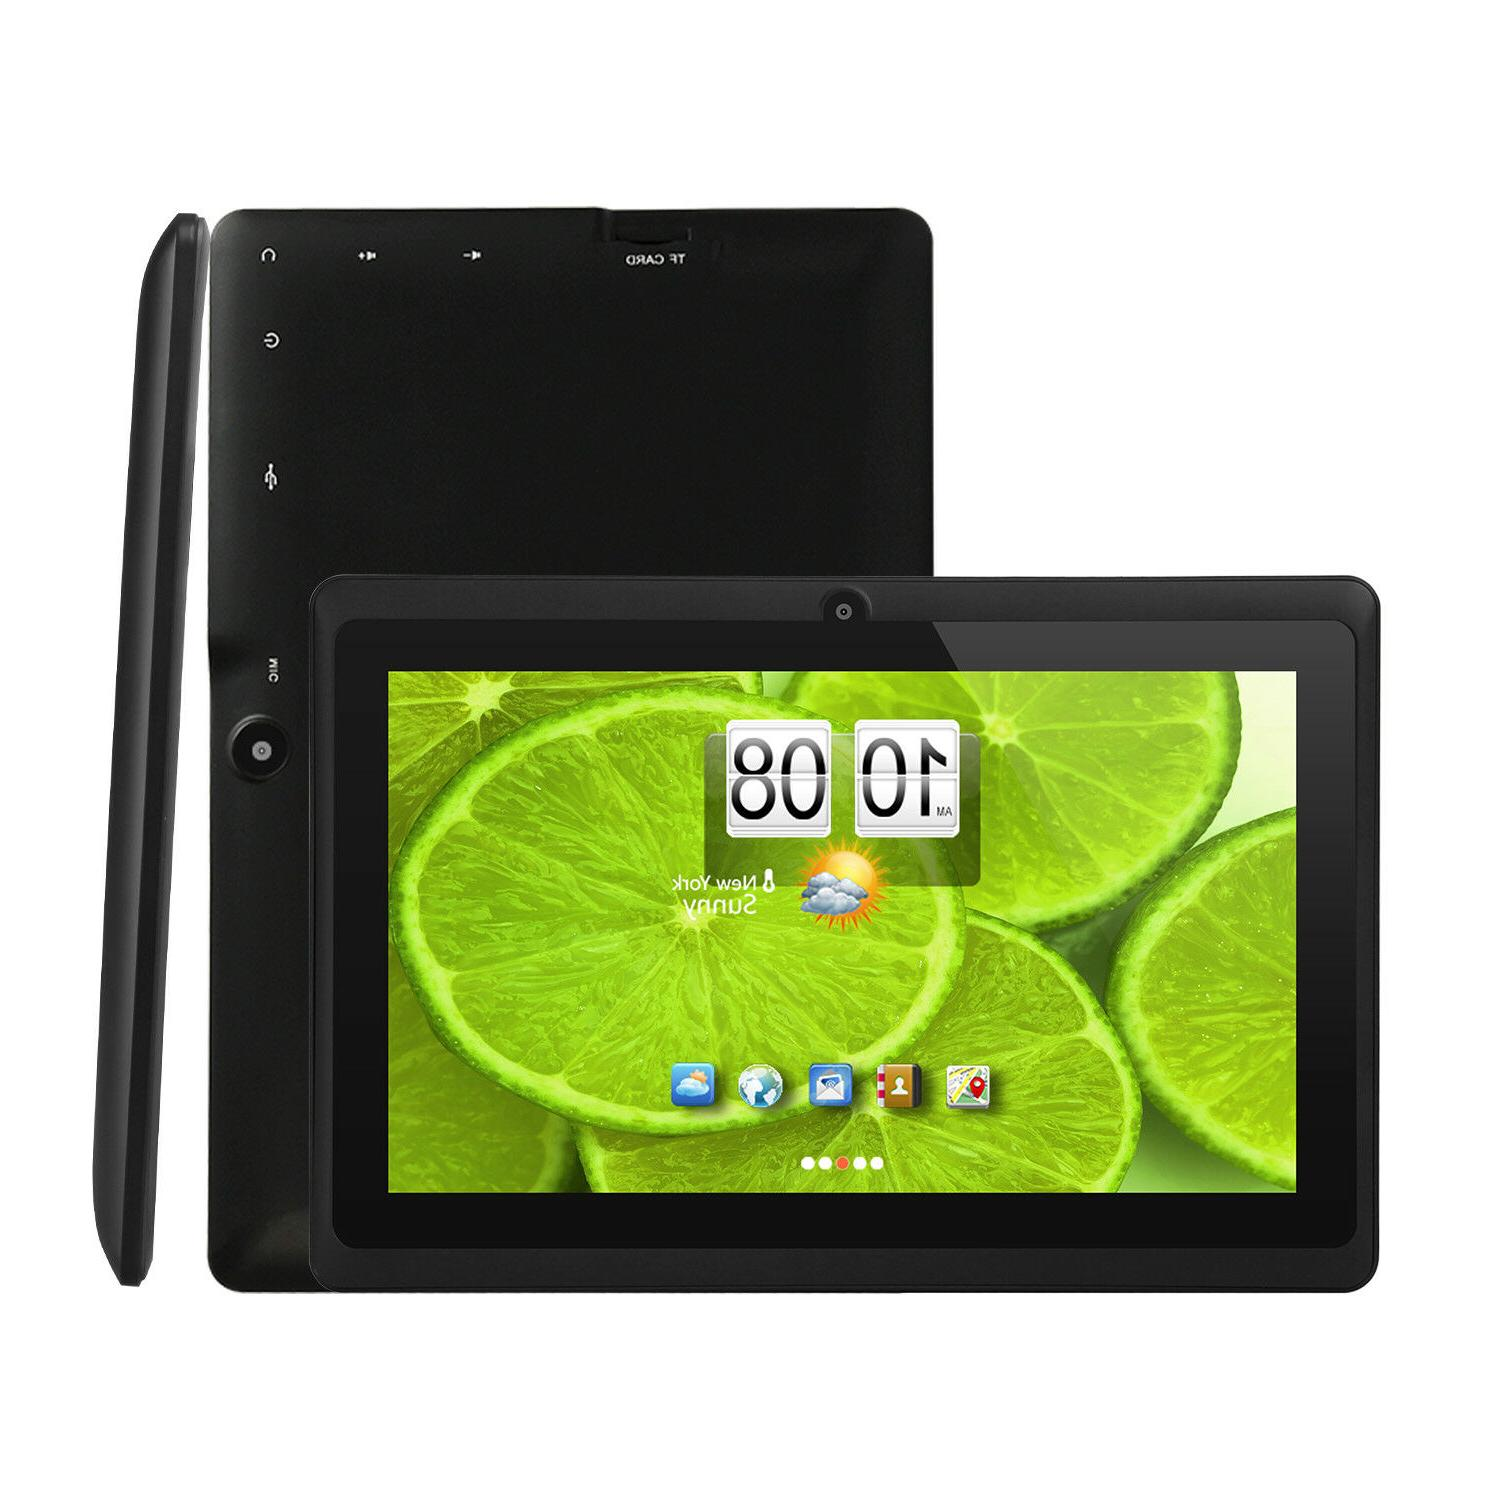 KOCASO Inch 8GB Kids Tablet PC Android Camera WiFi